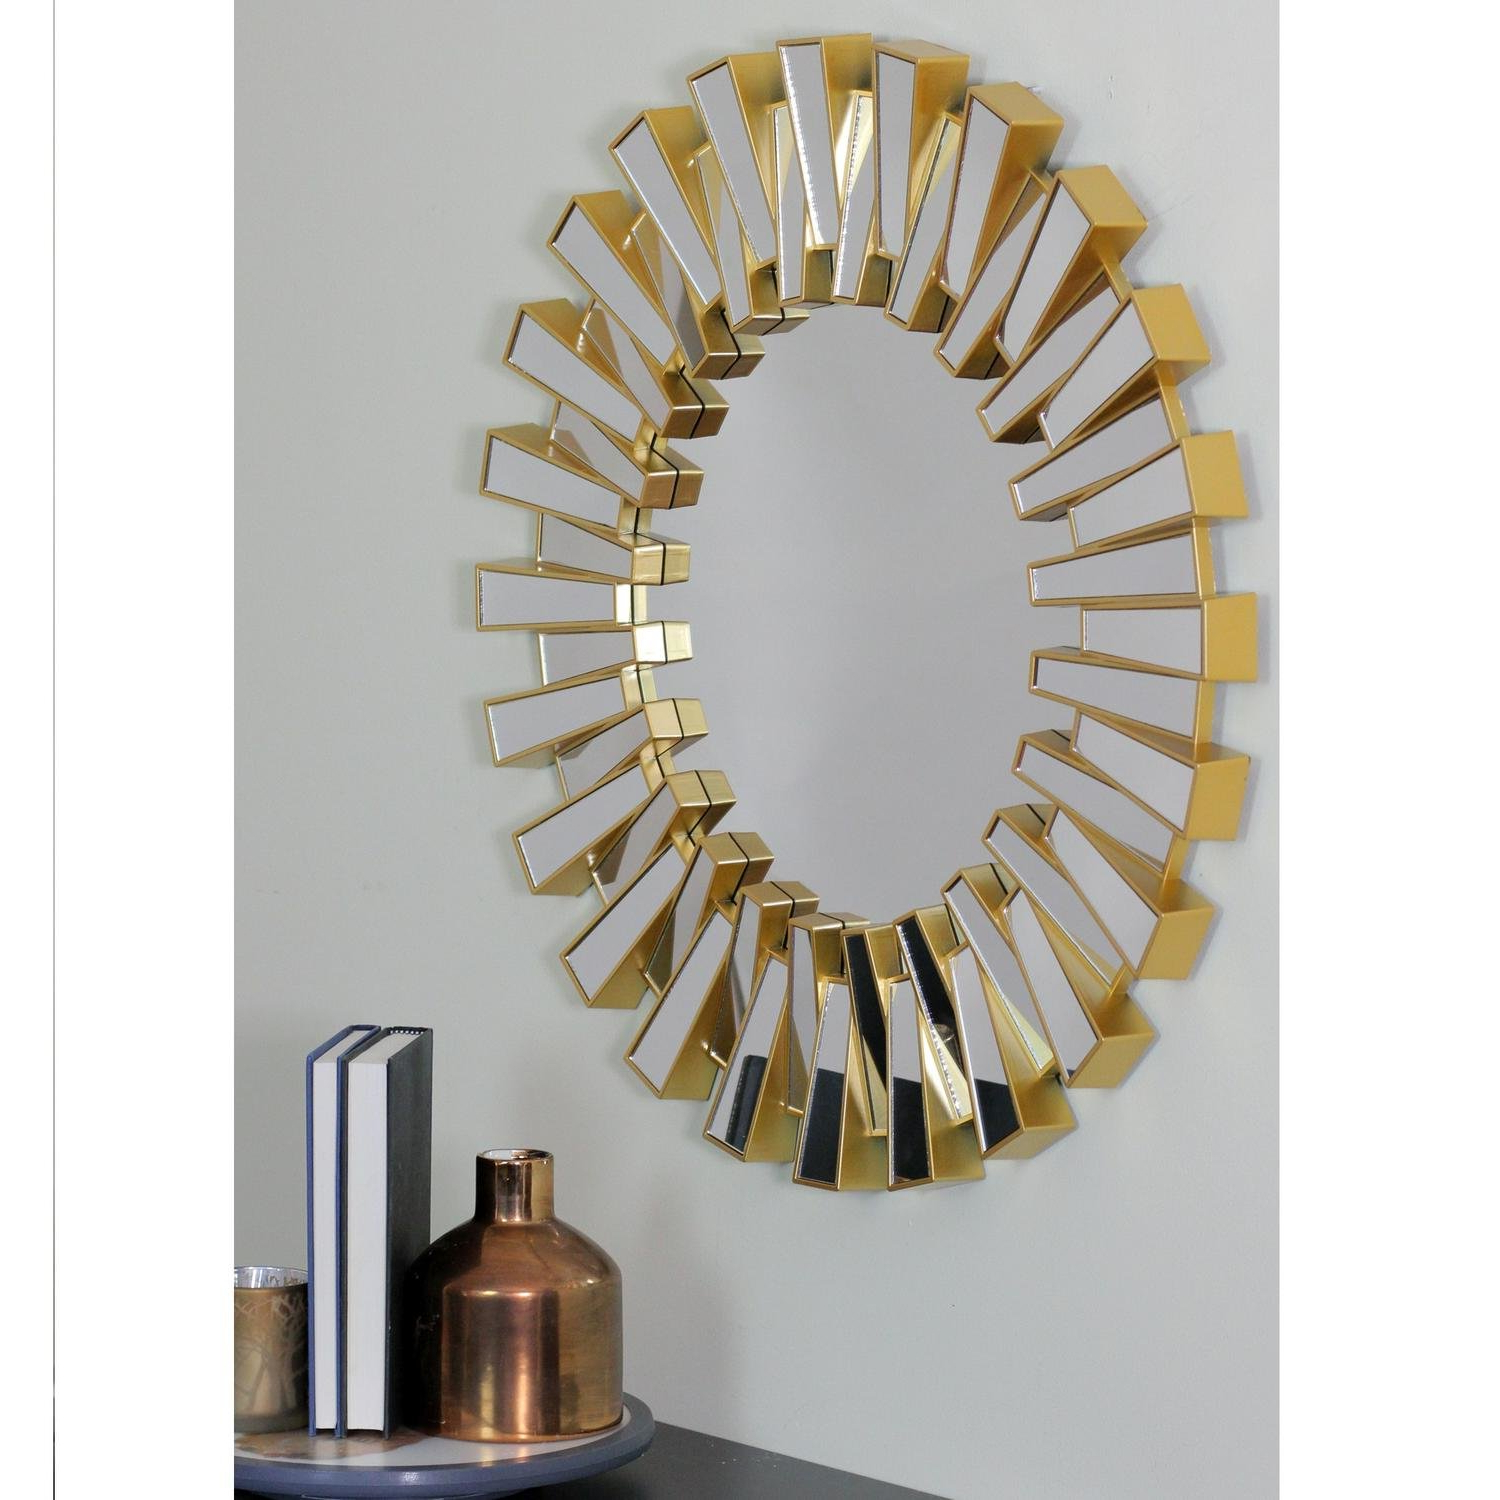 Widely Used Richards Aztec Inspired Sparkling Sunburst Round Wall Mirror In Estrela Modern Sunburst Metal Wall Mirrors (View 20 of 20)